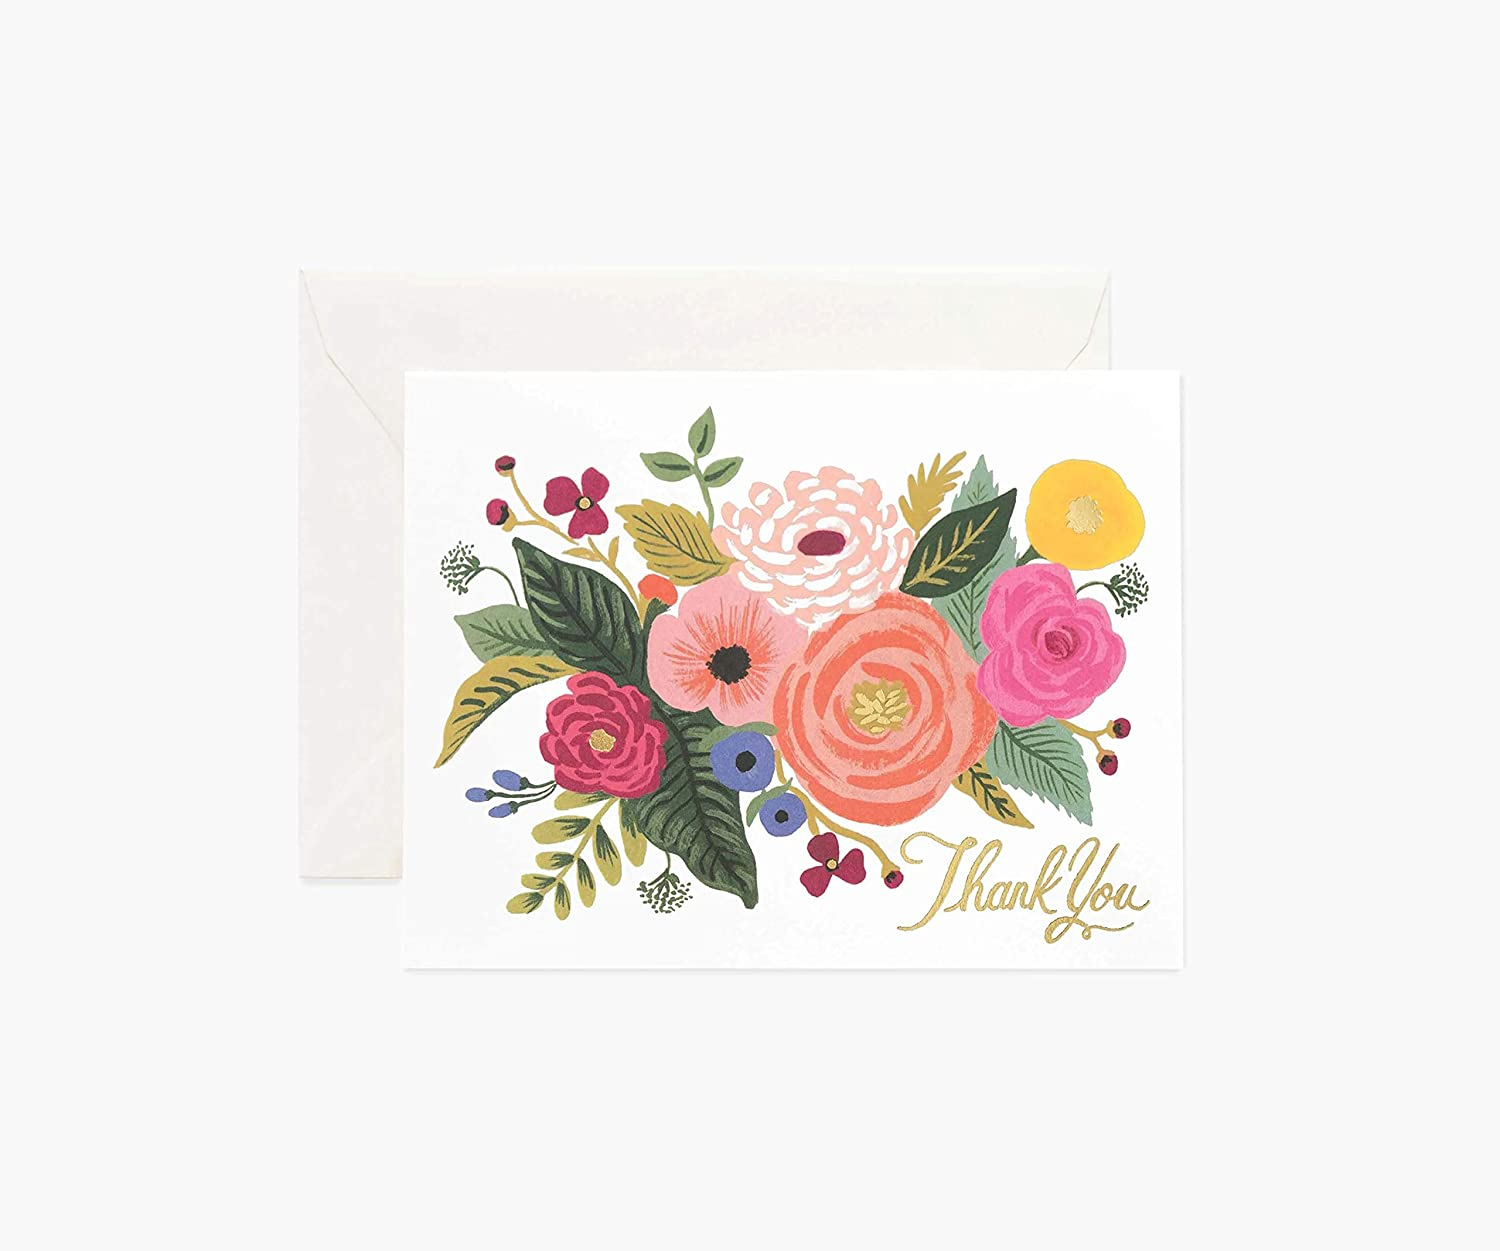 Rifle Paper Co. Juliet Rose Thank You Greeting Card Box Set, Blank Interior Lets Your Handwritten Note Take Center Stage, Boxed Set of 8